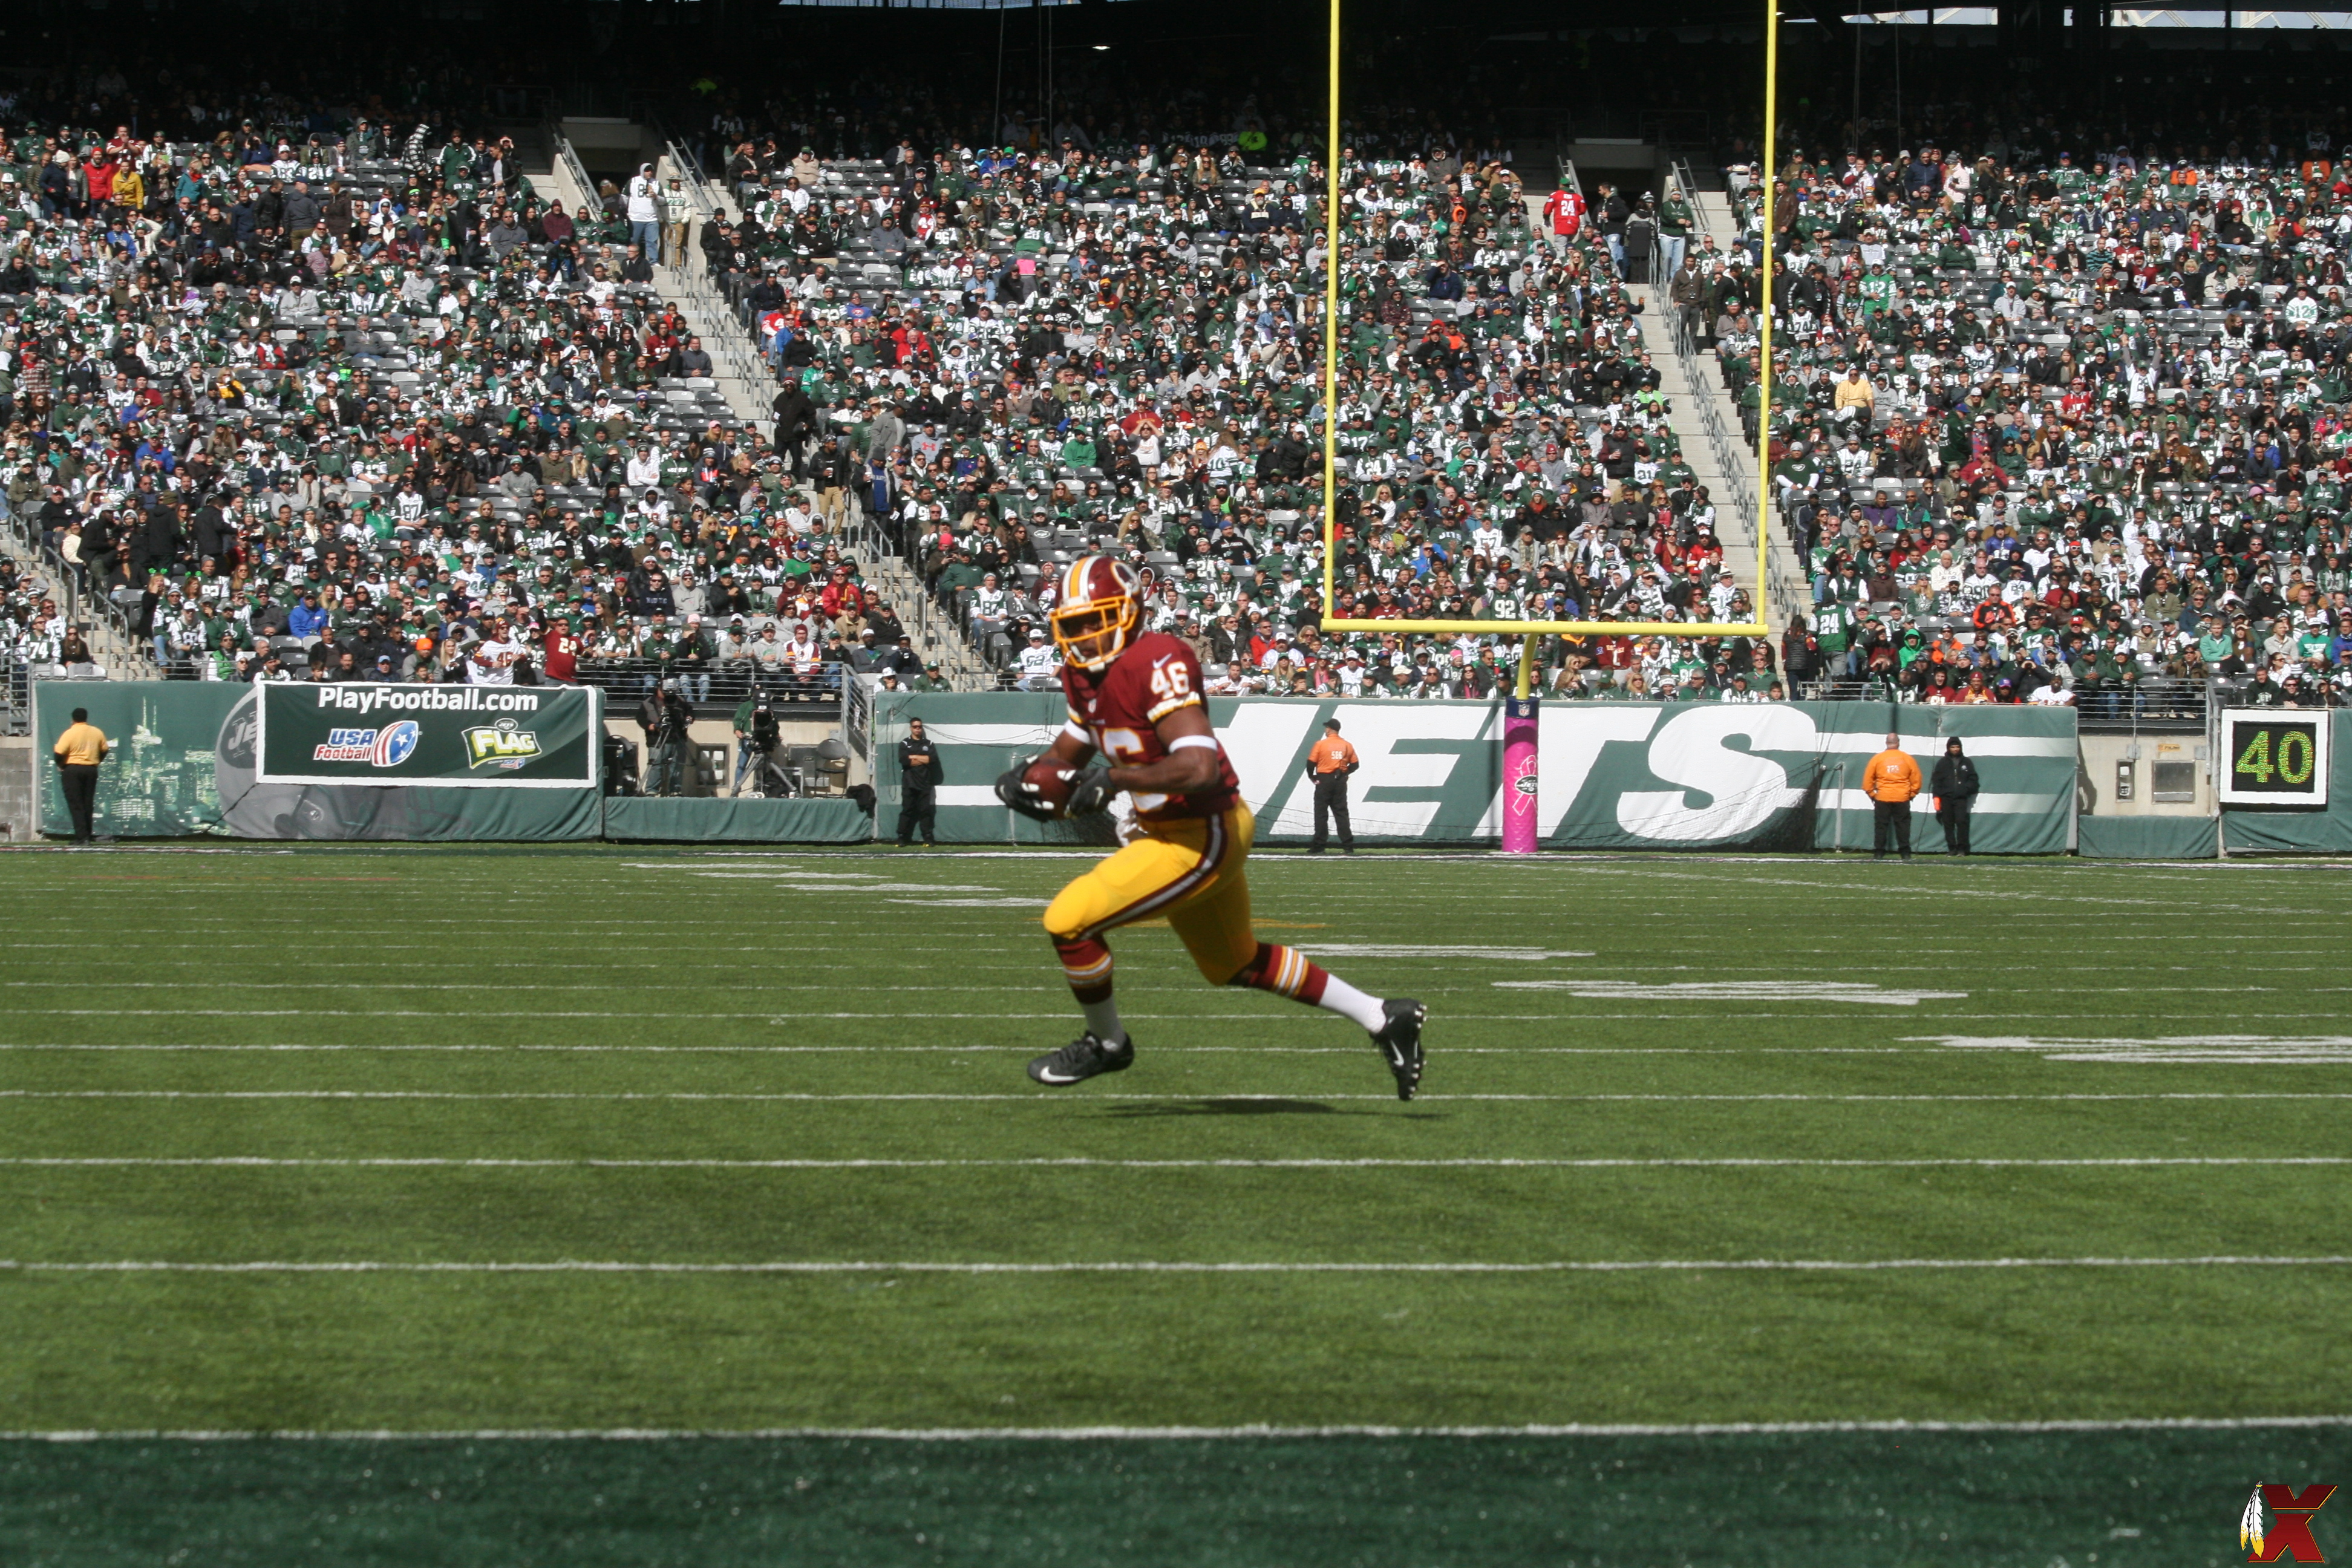 2015 Week 6 Redskins at Jets